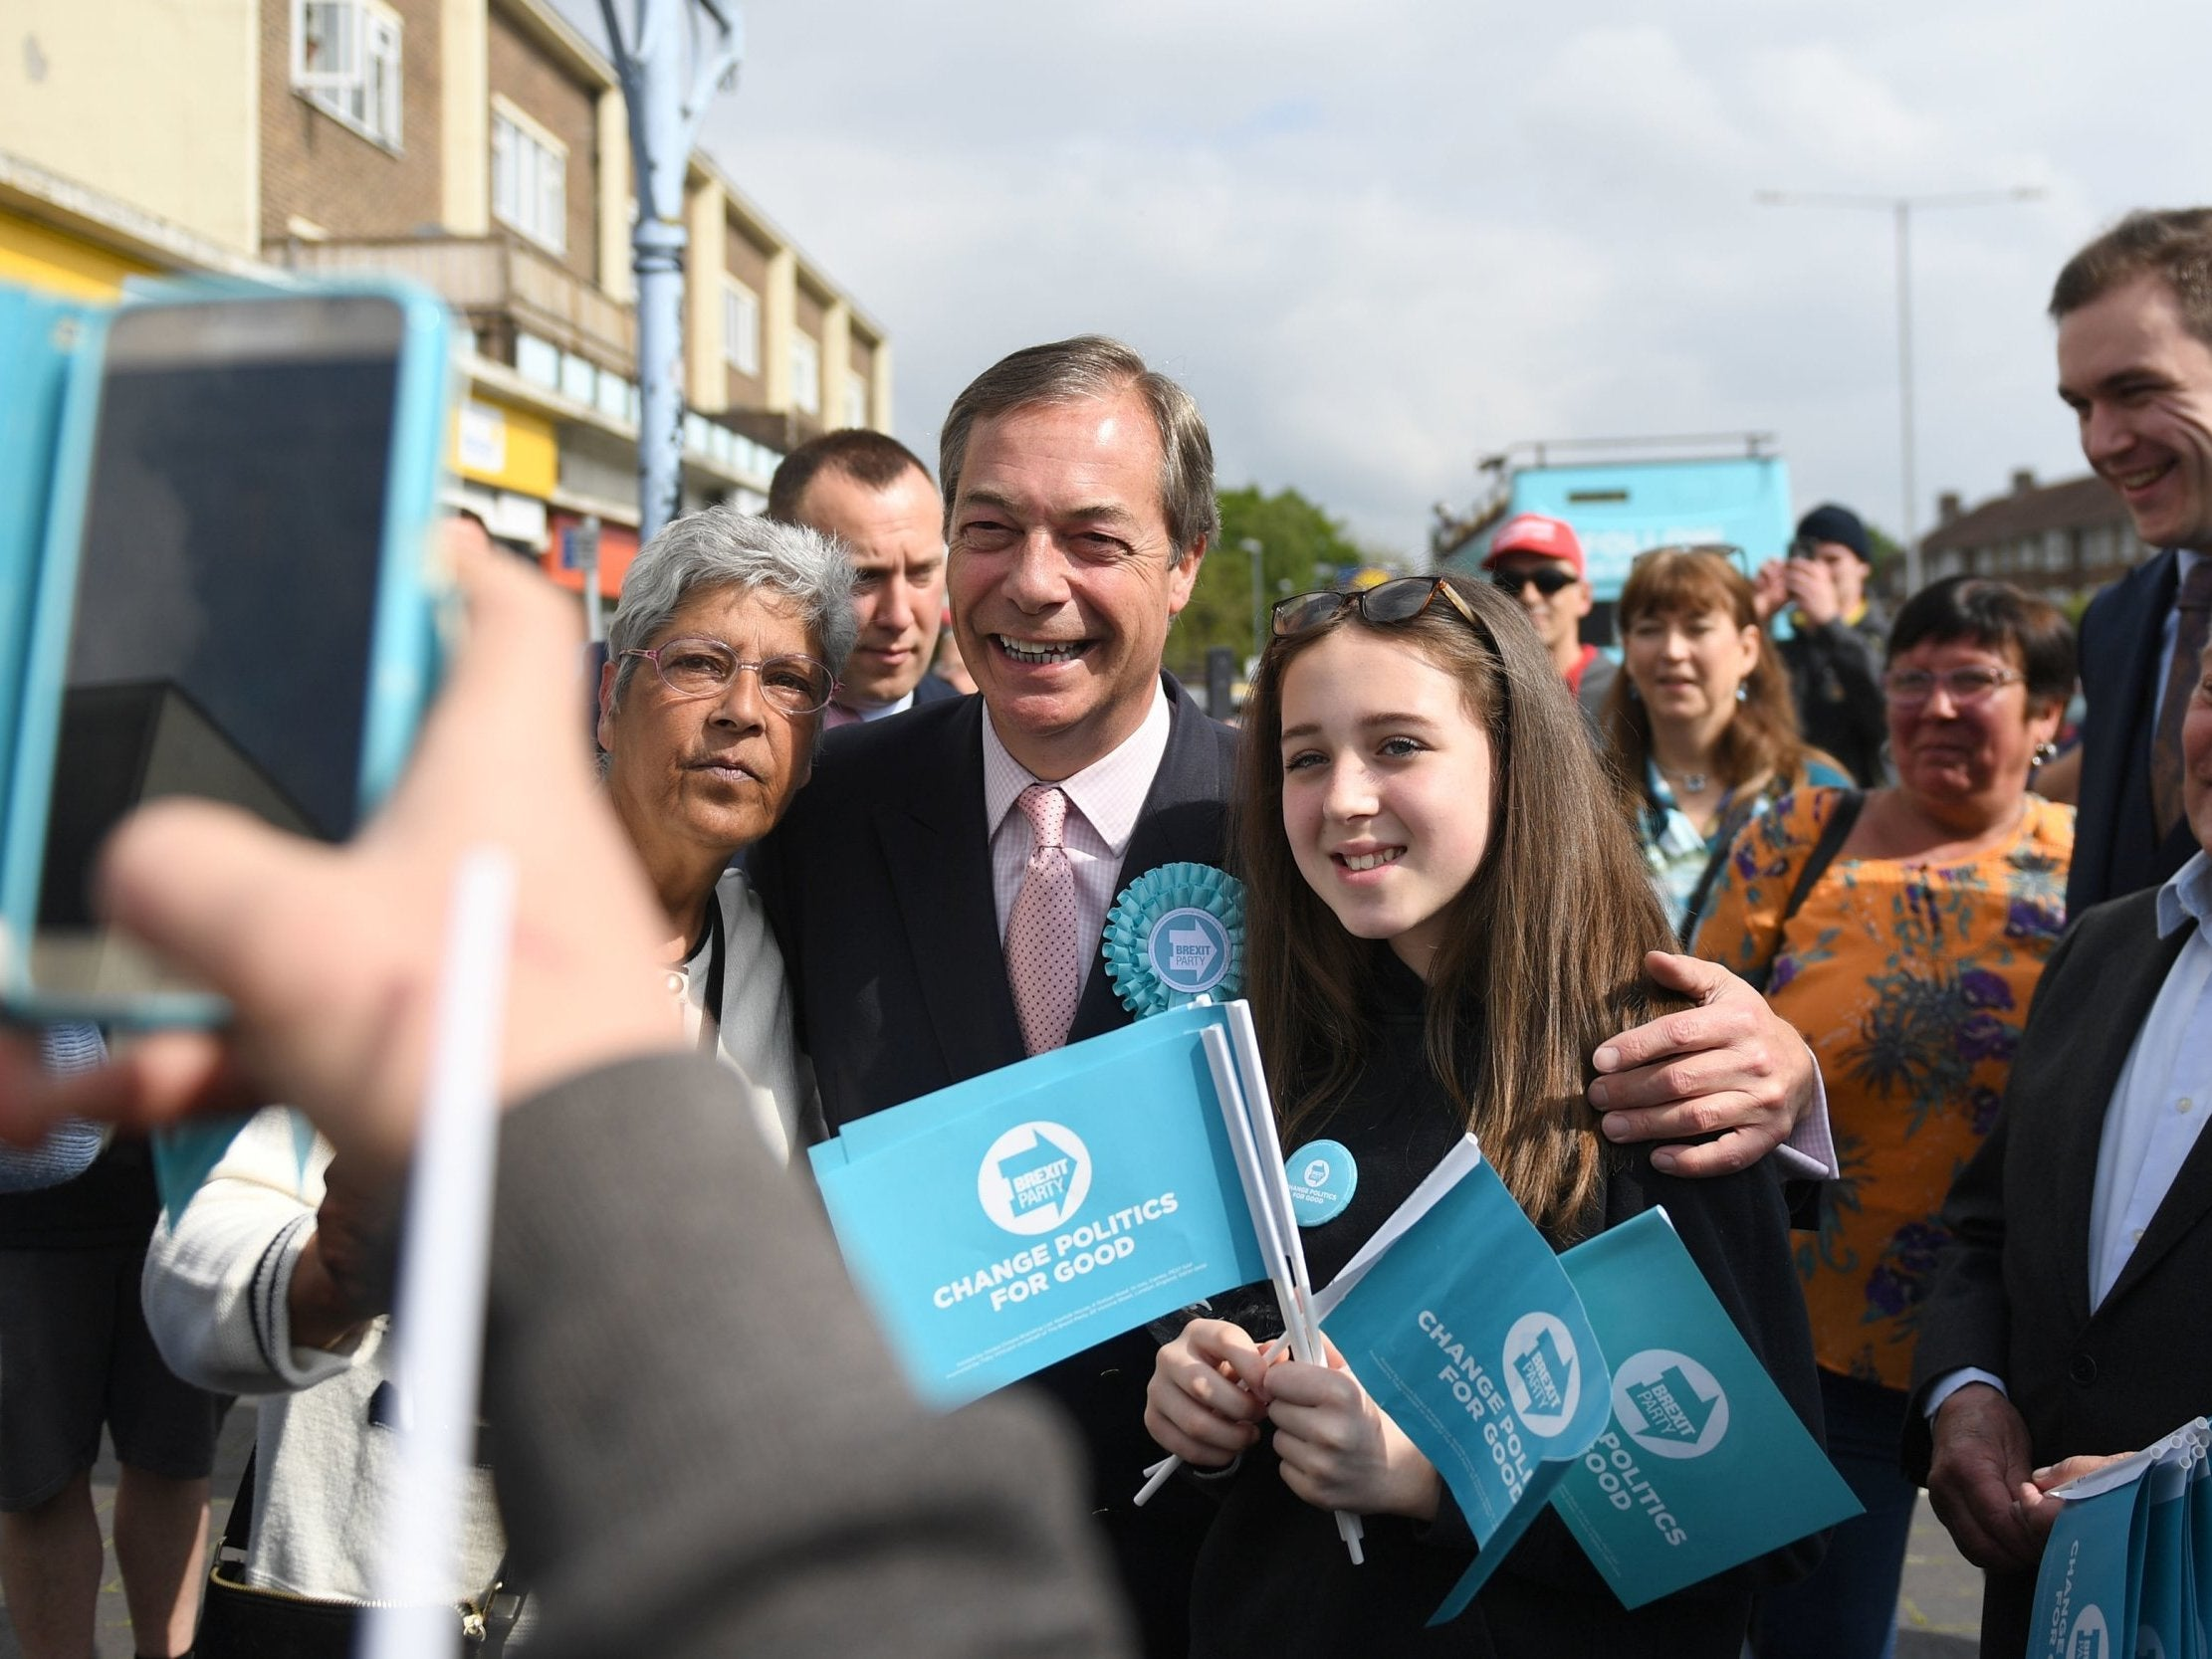 Brexit Party overtakes Tories in poll of general election voting intentions